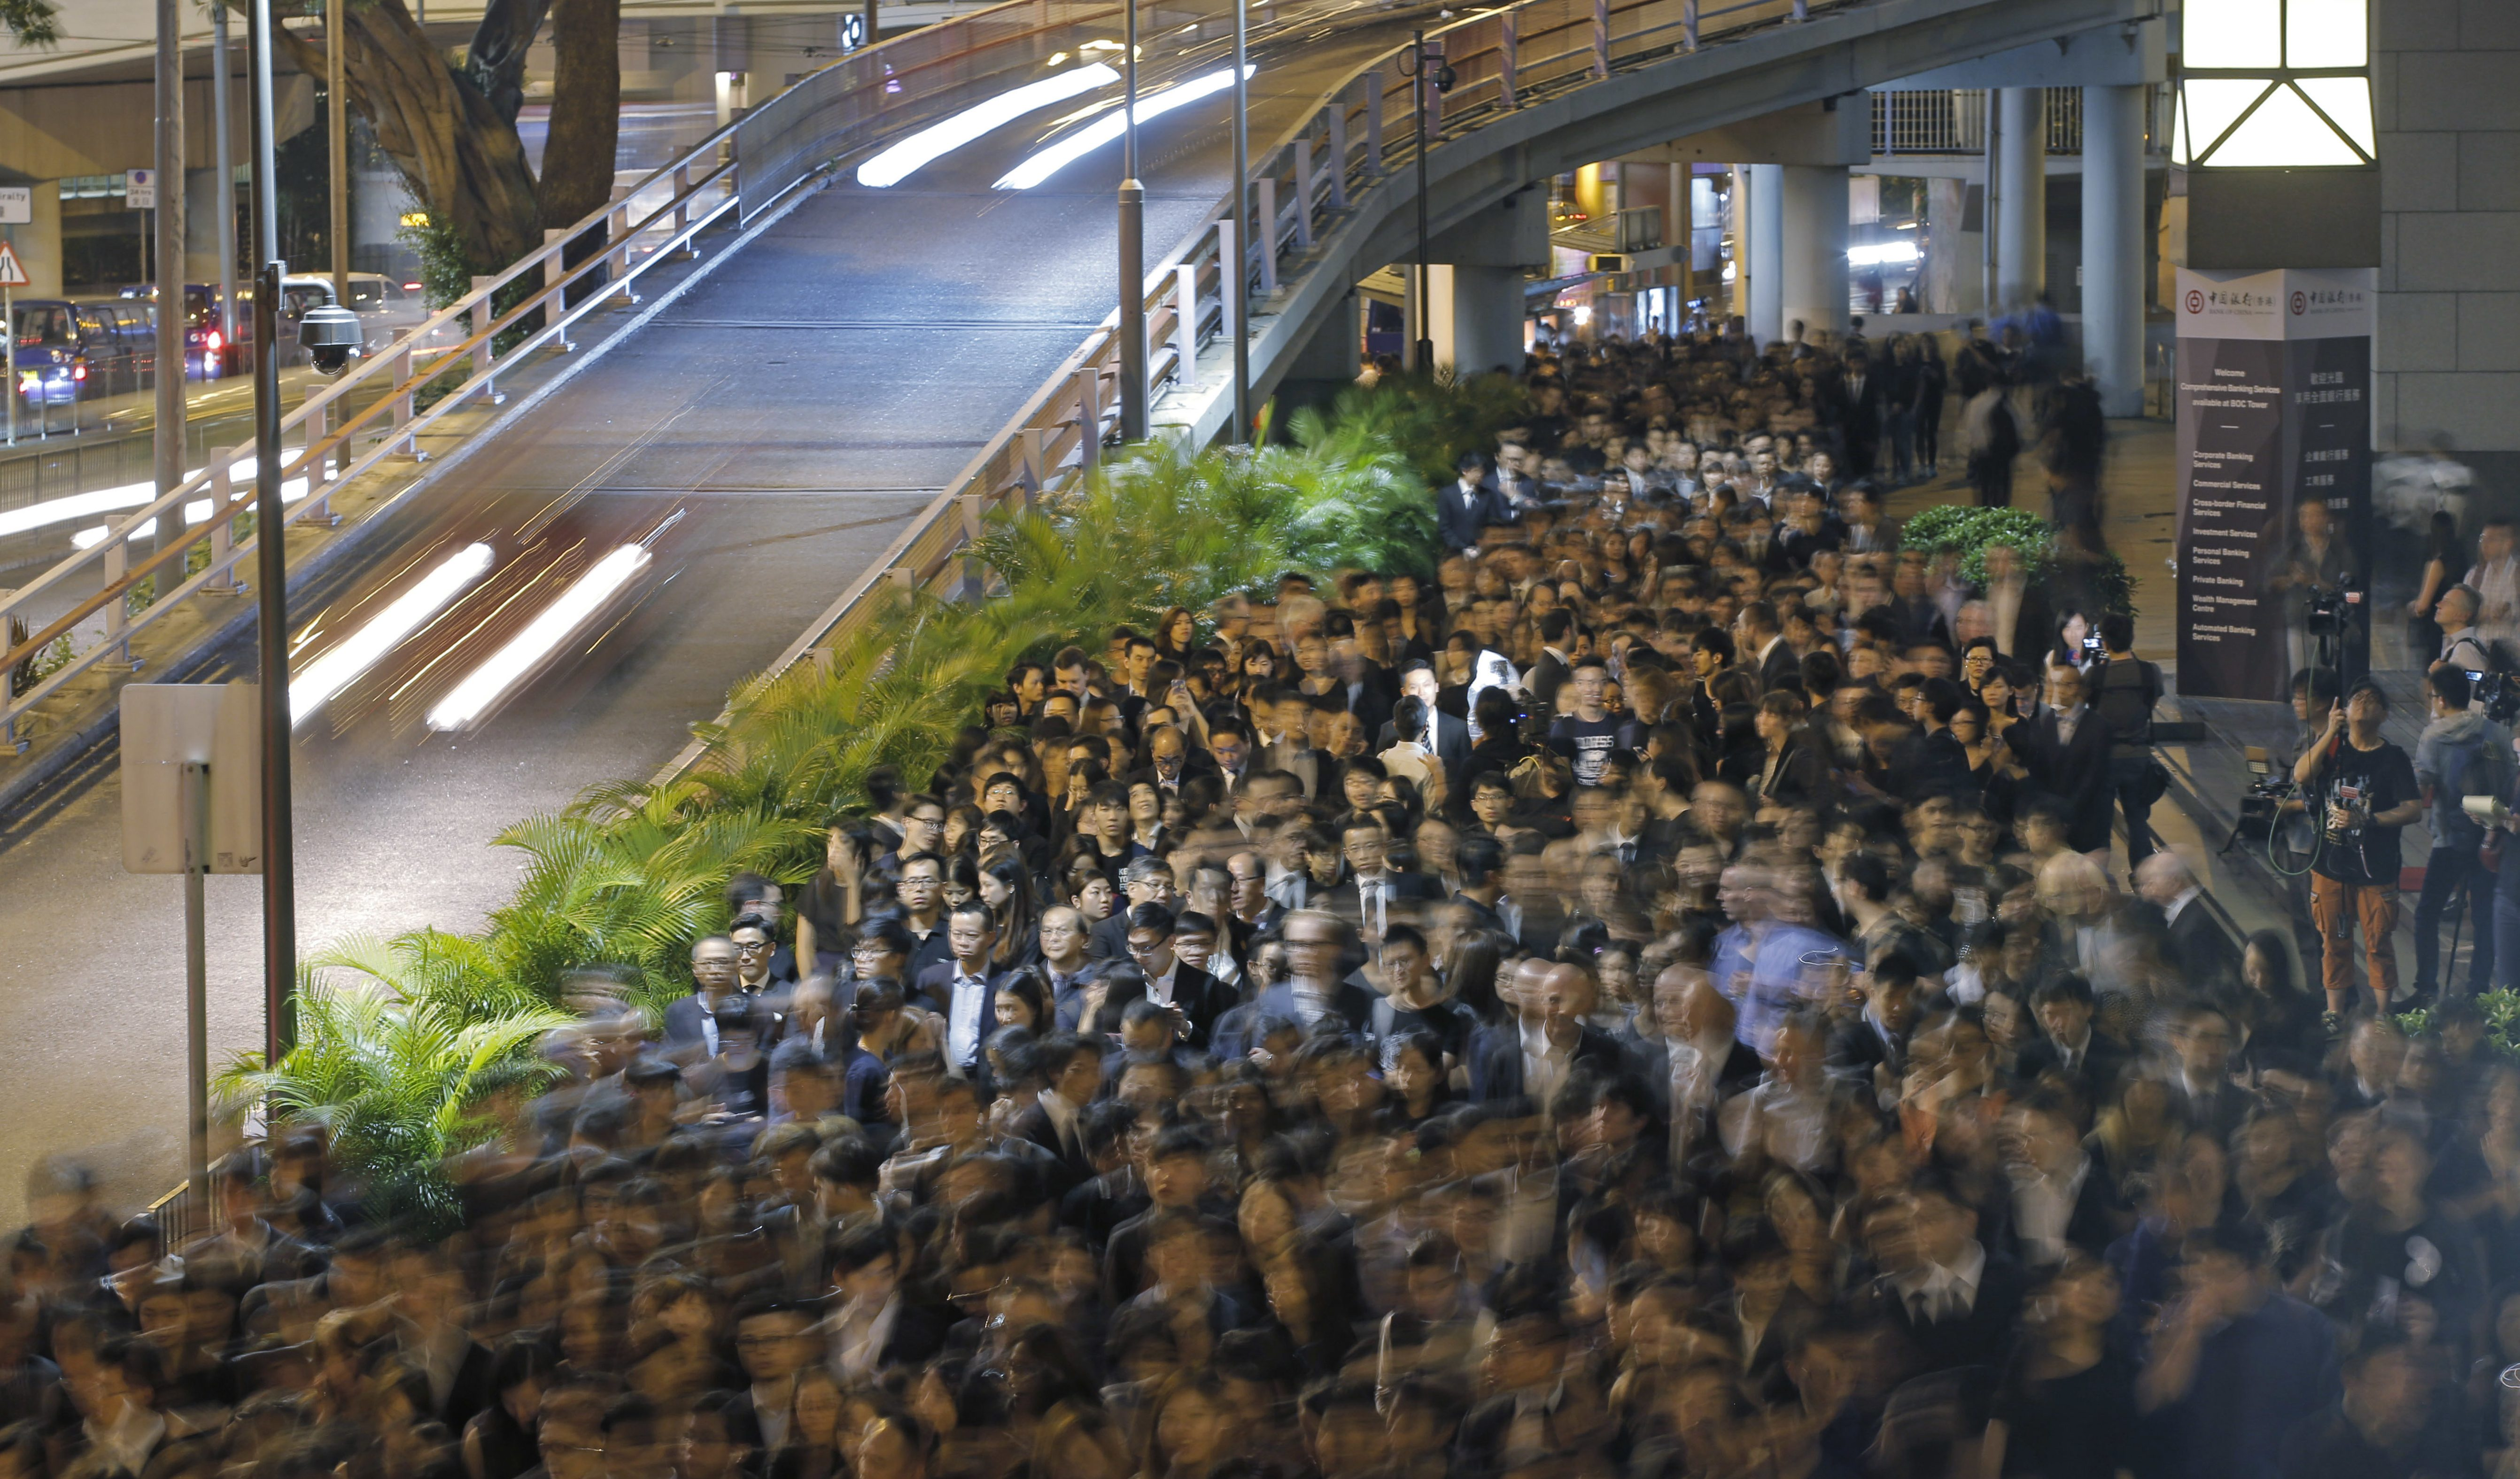 Hong Kong lawyers take part in a silent protest march through downtown streets in Hong Kong Tuesday, Nov. 8, 2016. Hundreds of Hong Kong lawyers dressed in black staged a silent march through the downtown core to the southern Chinese city's top court, the Court of Final Appeal, to protest Beijing's unprecedented intervention earlier this week in a local political dispute that effectively barred two popularly elected separatist lawmakers from taking office. (AP Photo/Kin Cheung)